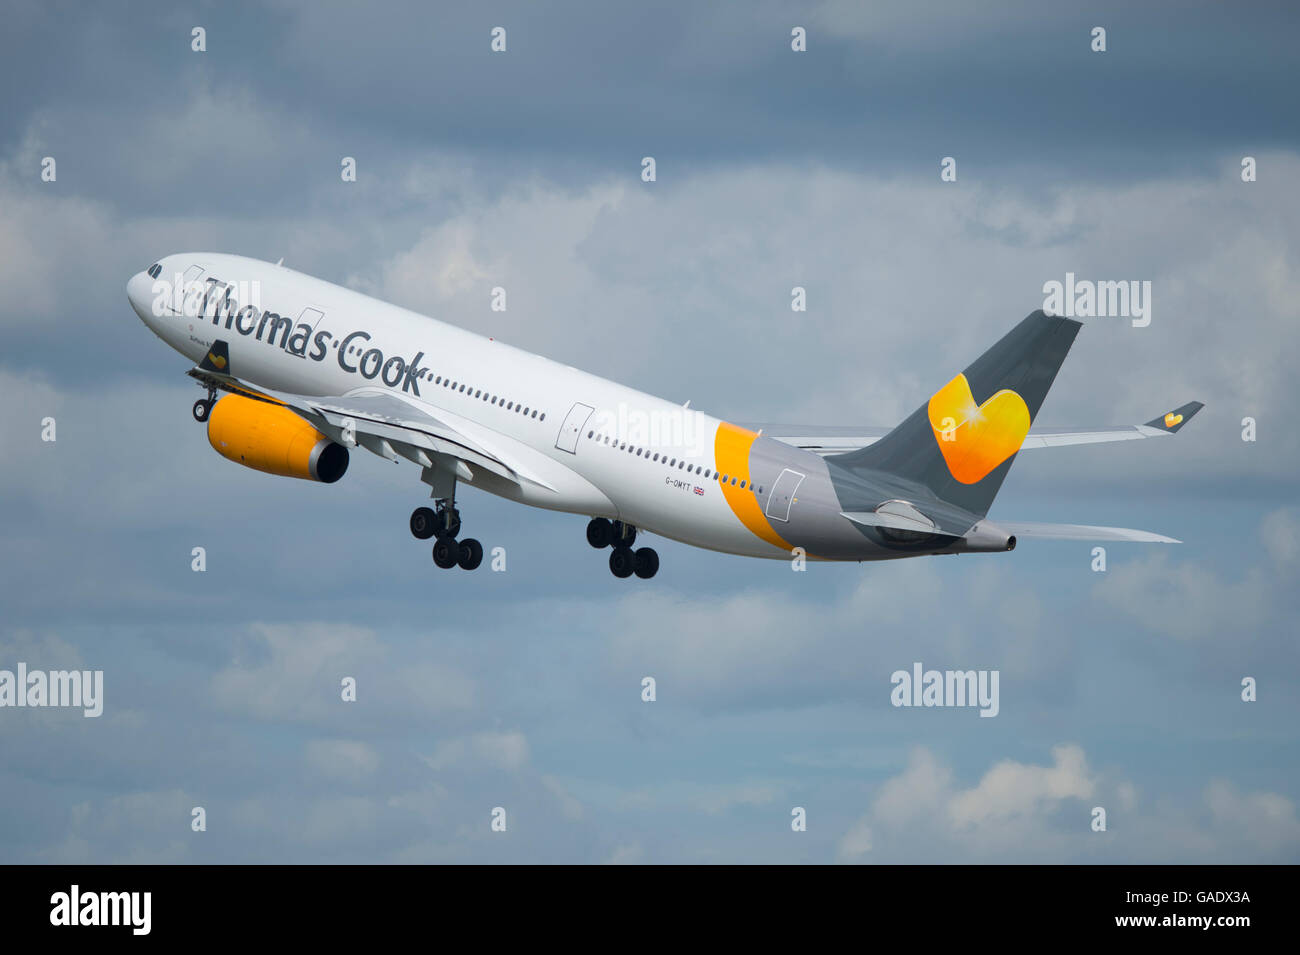 A Thomas Cook Airbus A330 takes off from Manchester International Airport (Editorial use only) - Stock Image